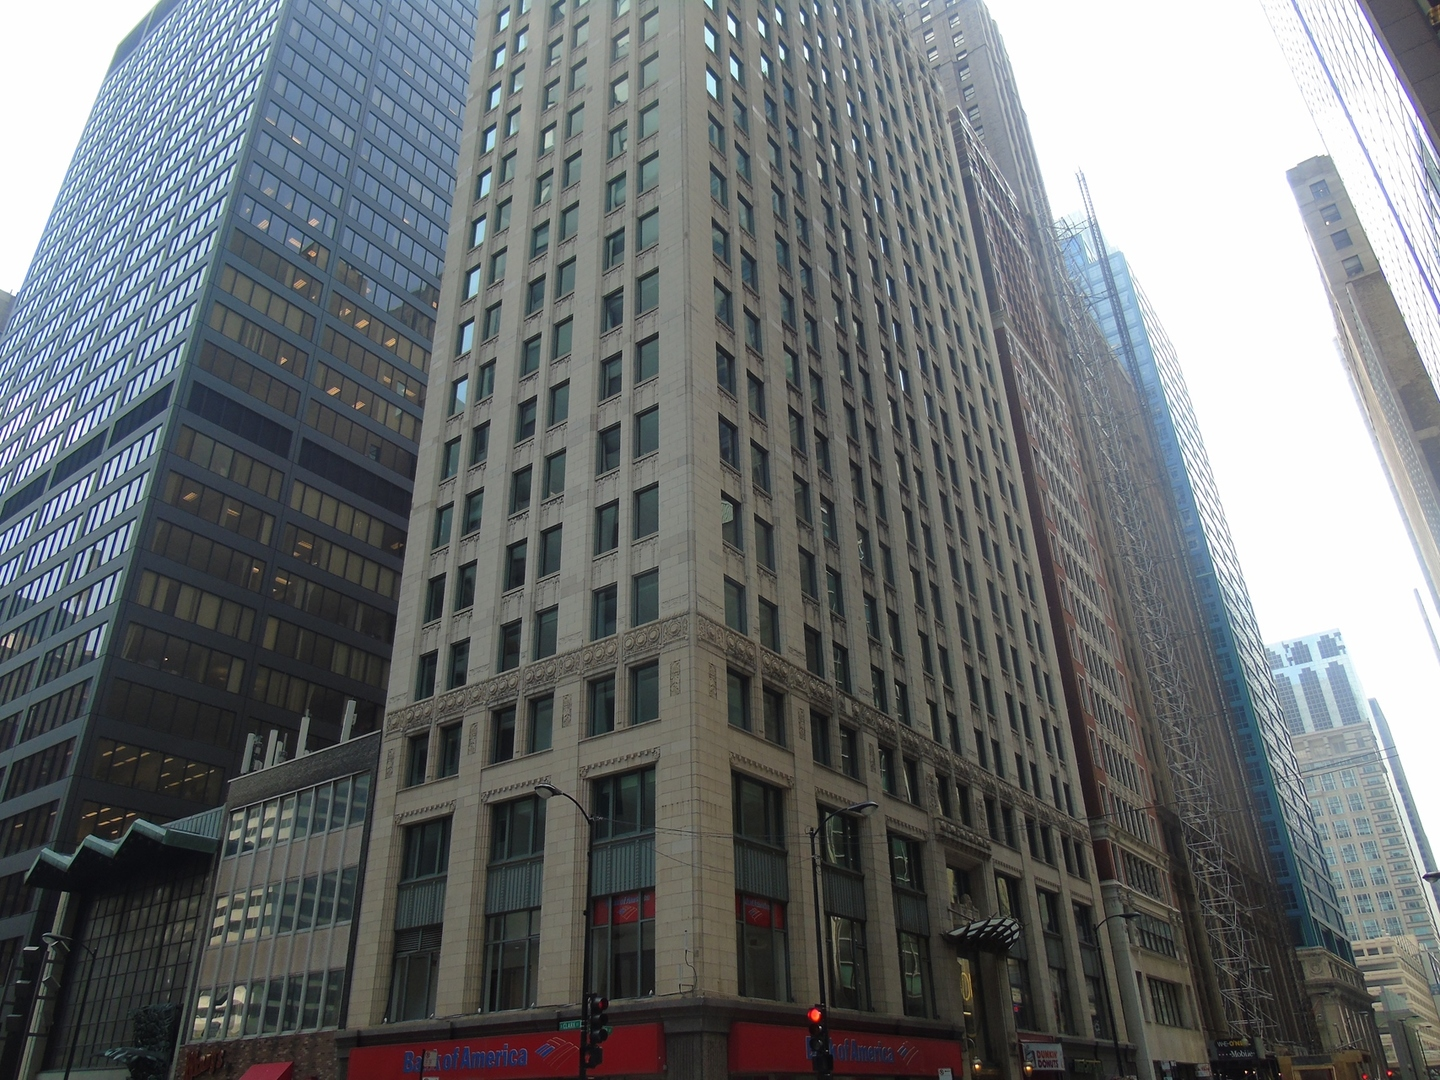 105 Madison ,Chicago, Illinois 60602